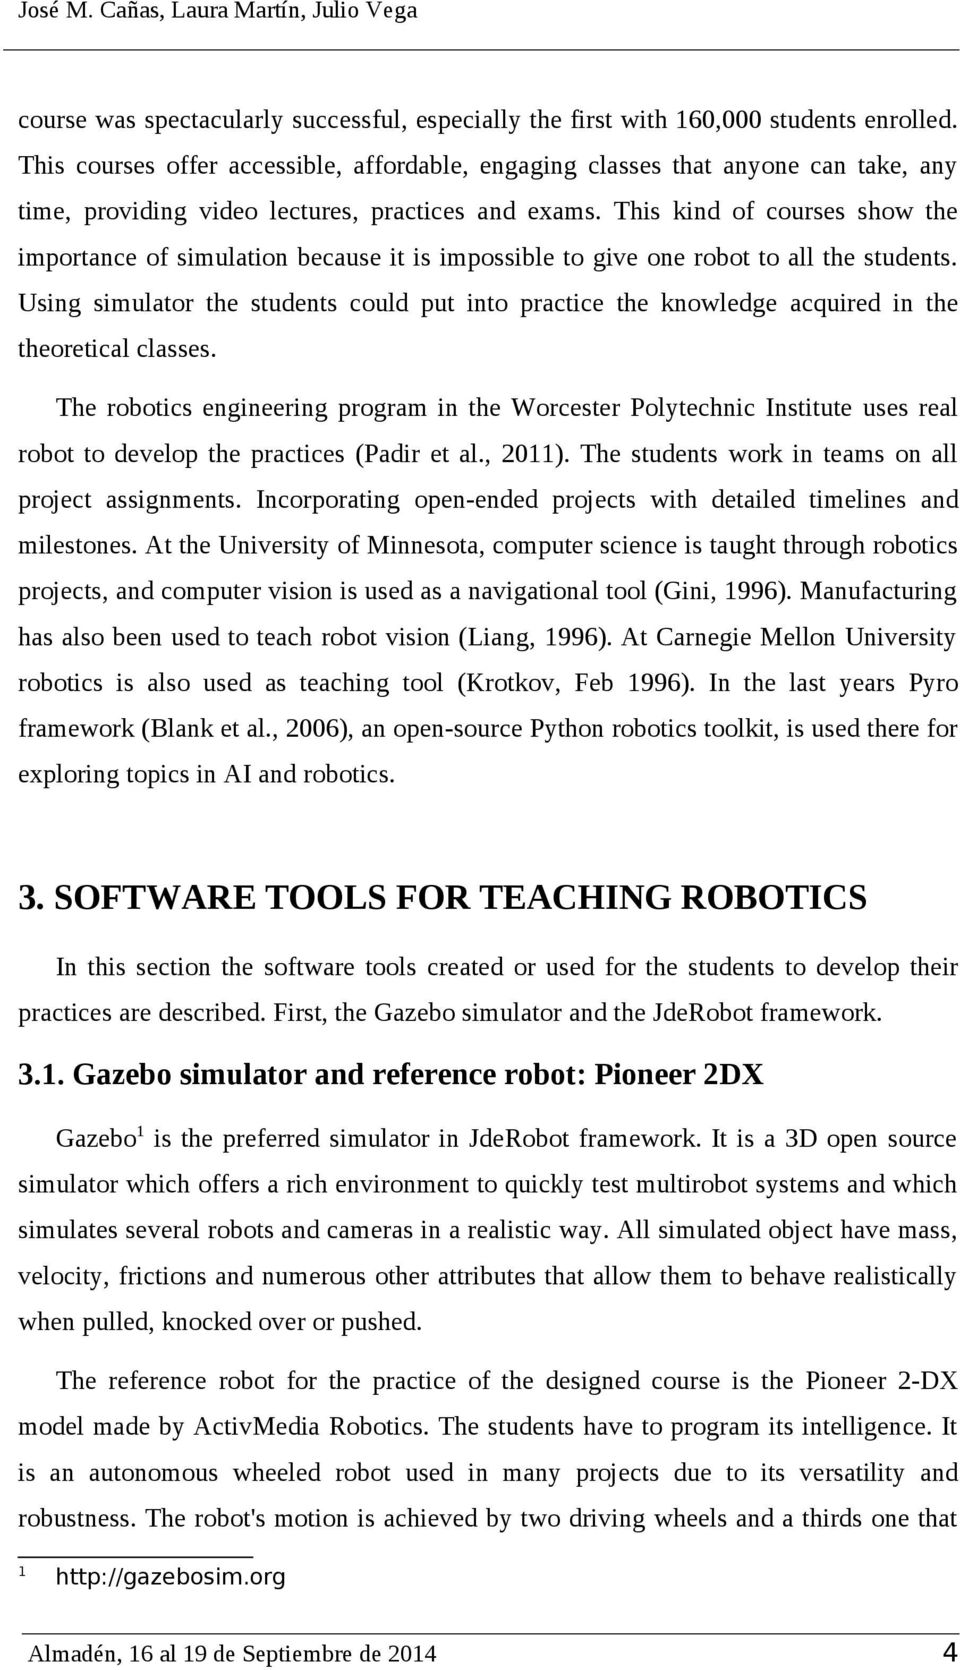 This kind of courses show the importance of simulation because it is impossible to give one robot to all the students.